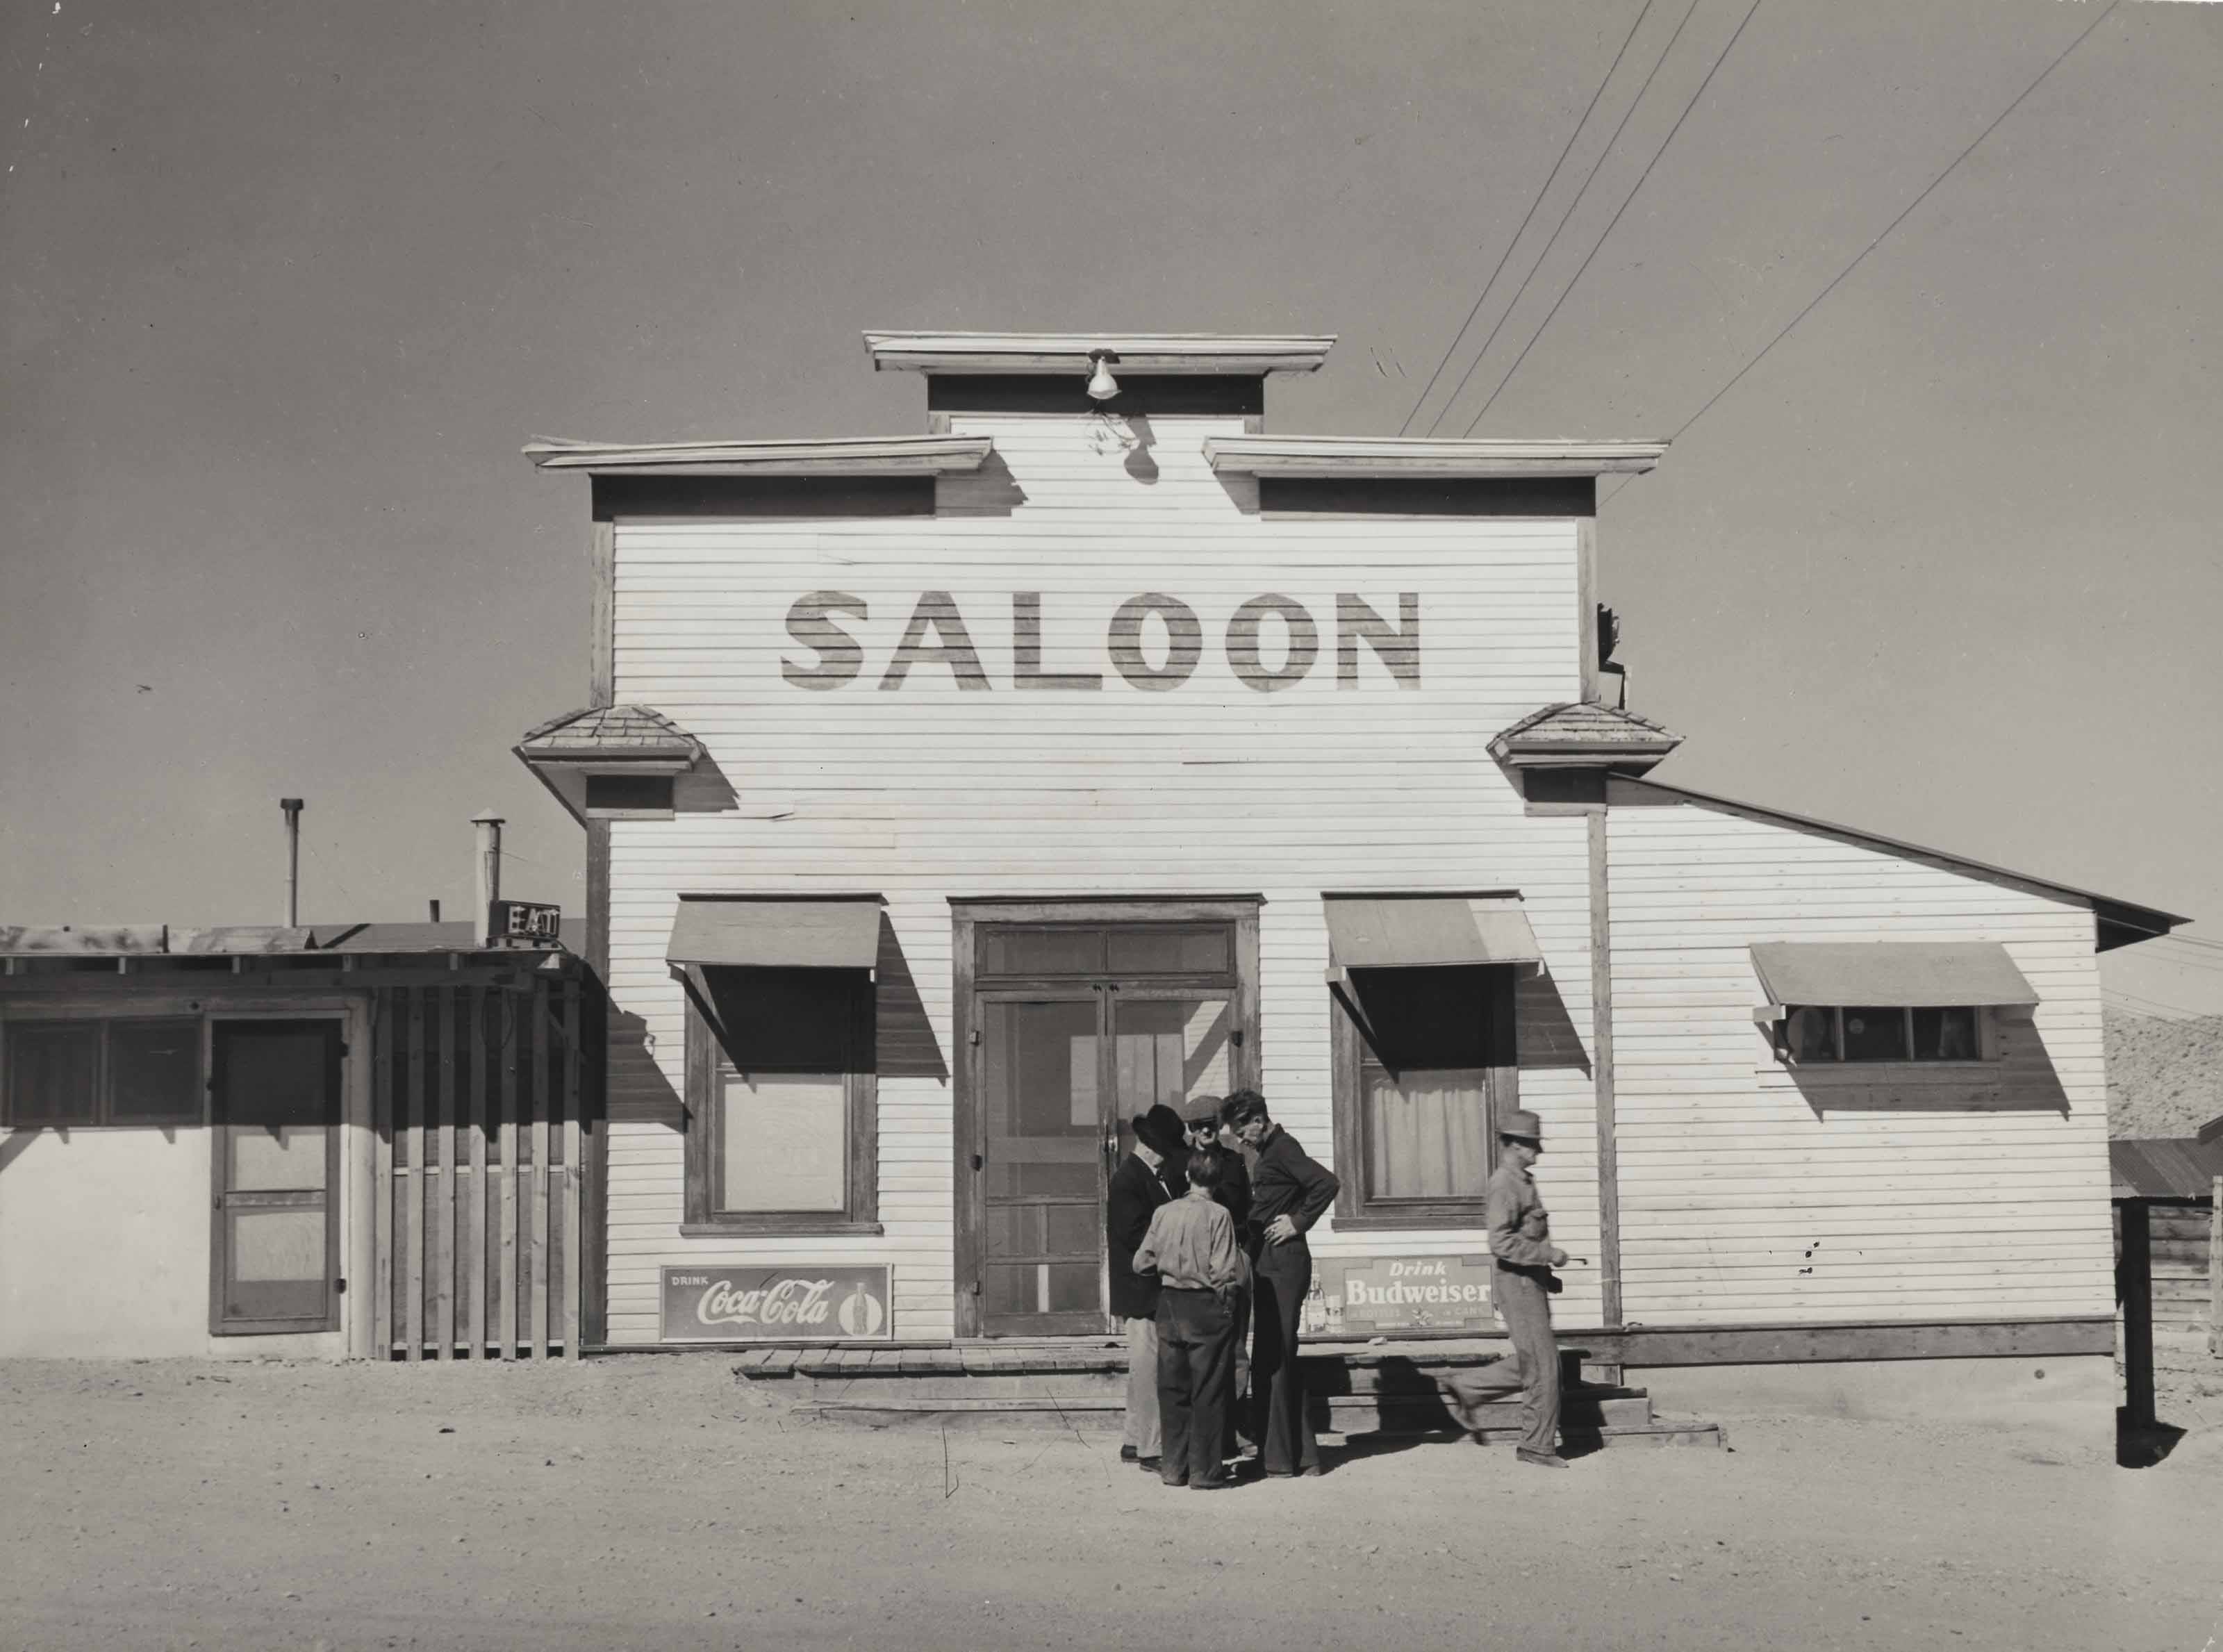 Saloon, Silver Peak, Nevada, March 1940